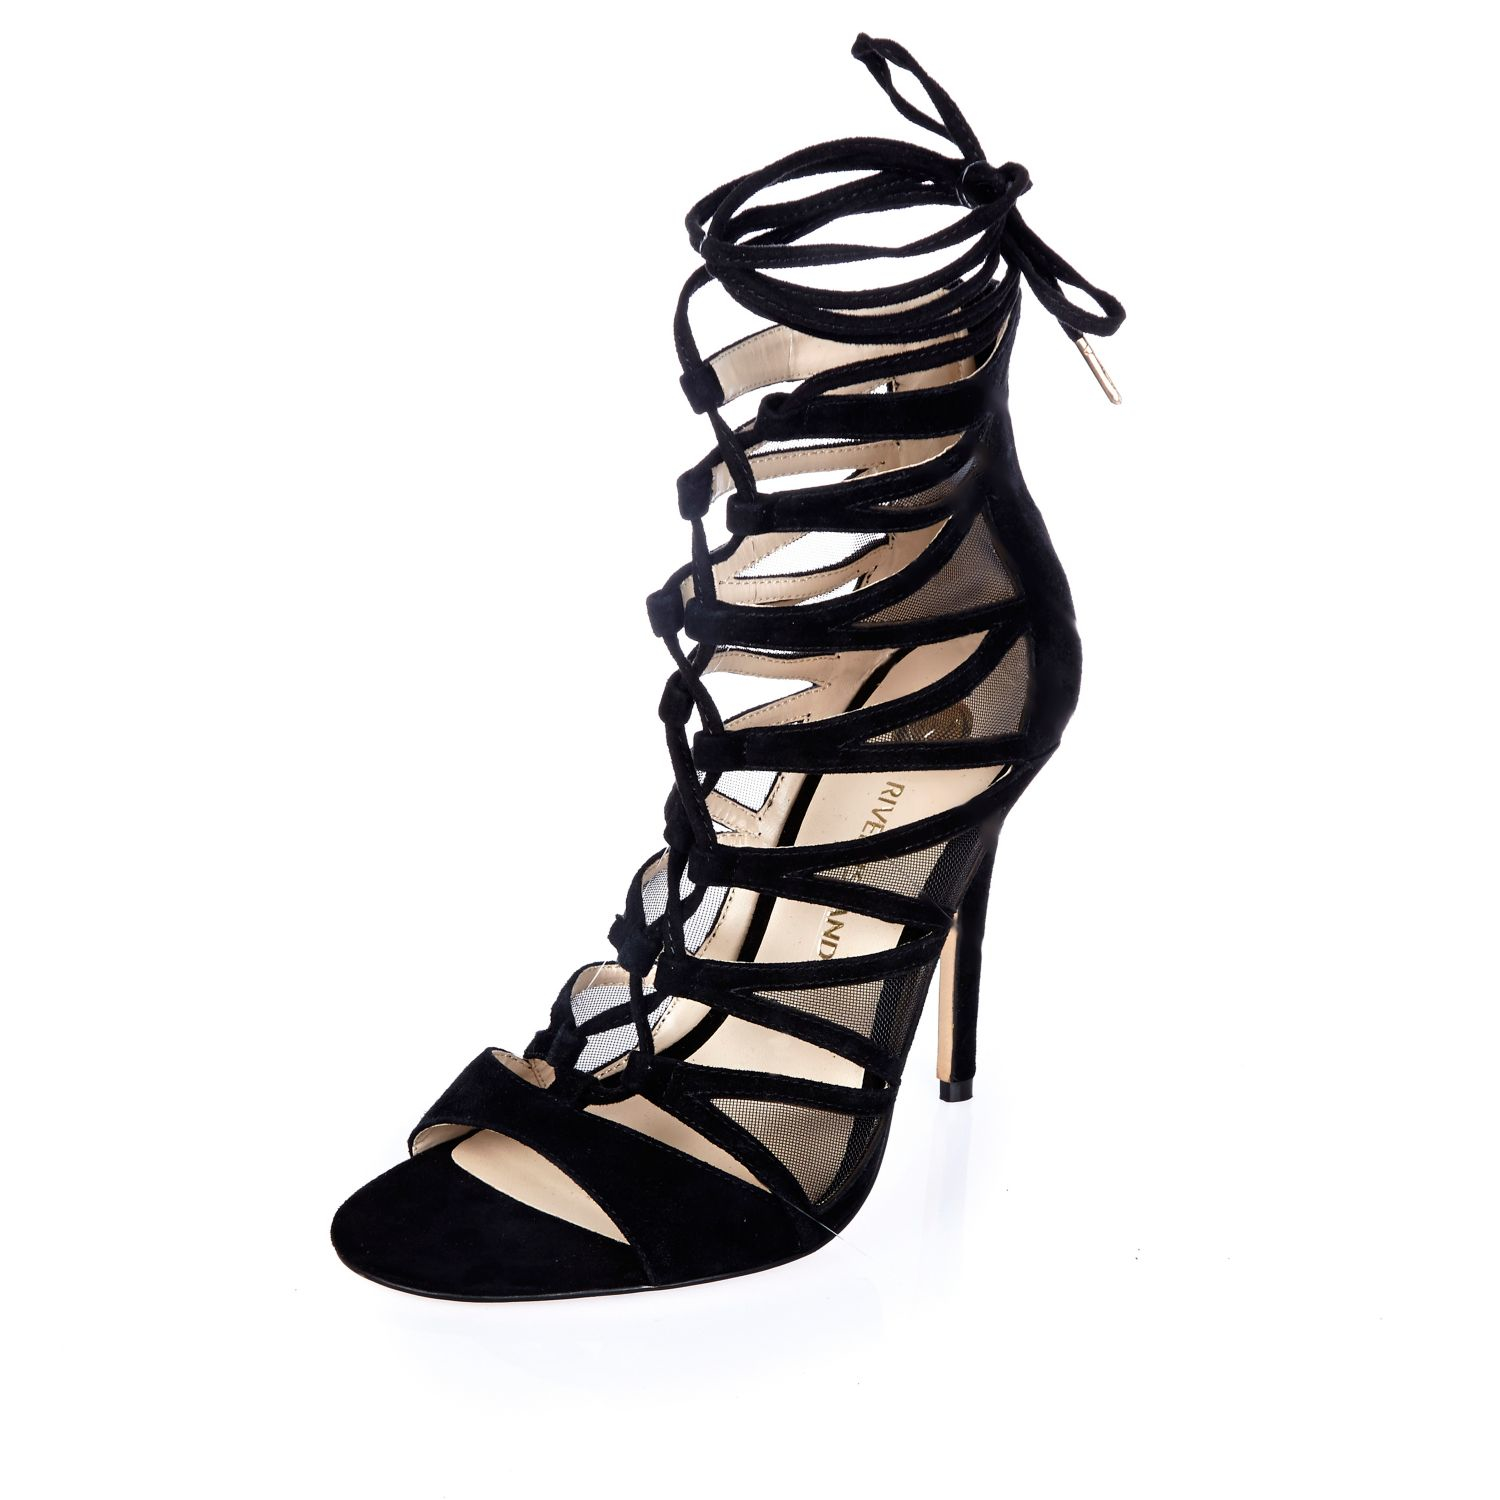 River island Black Suede Lace-up Caged Heels in Black | Lyst